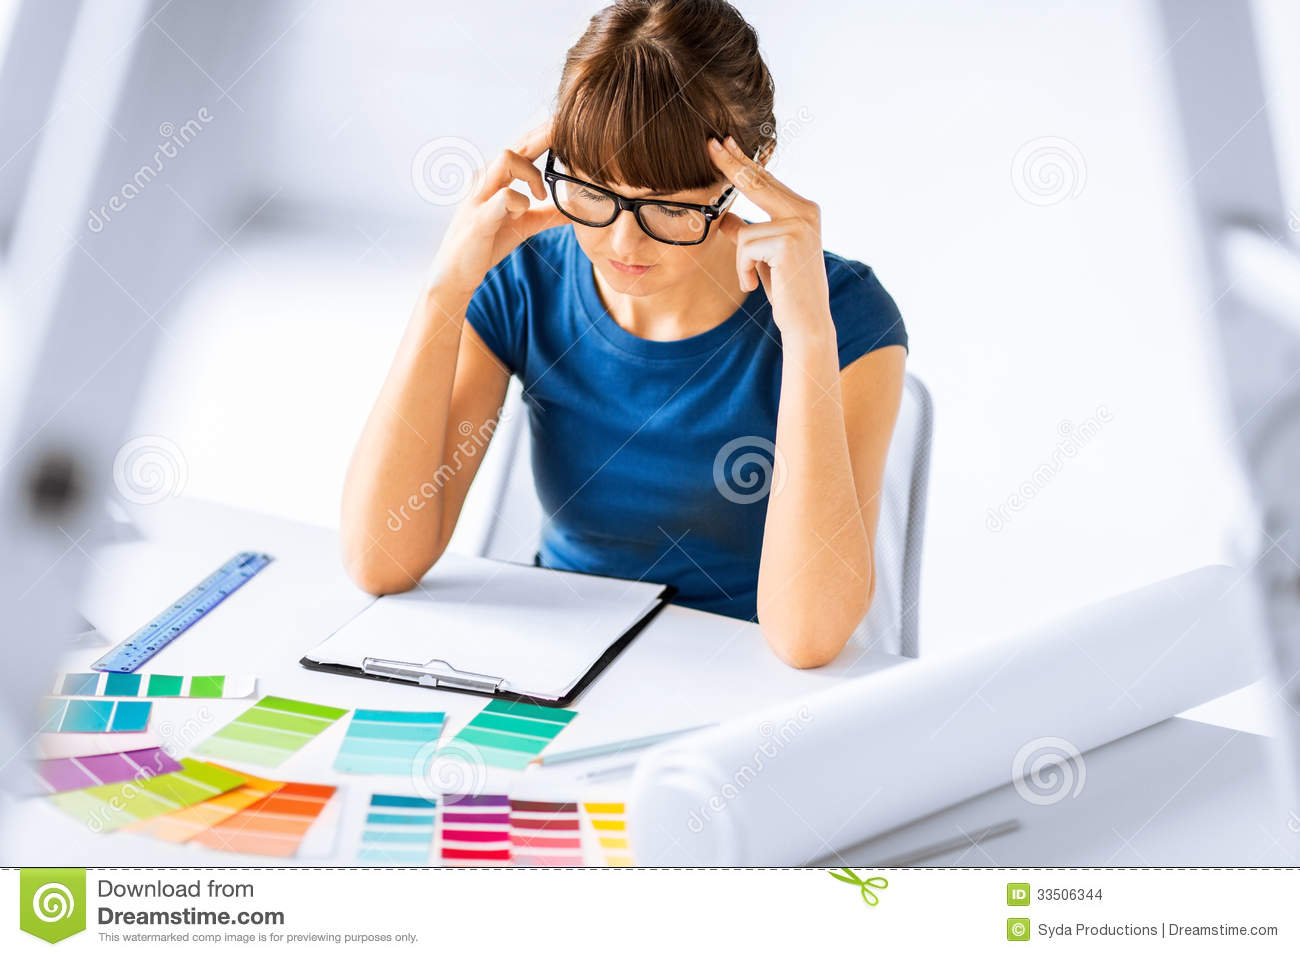 Stressed Interior Designer Stock Images - Image: 33506344